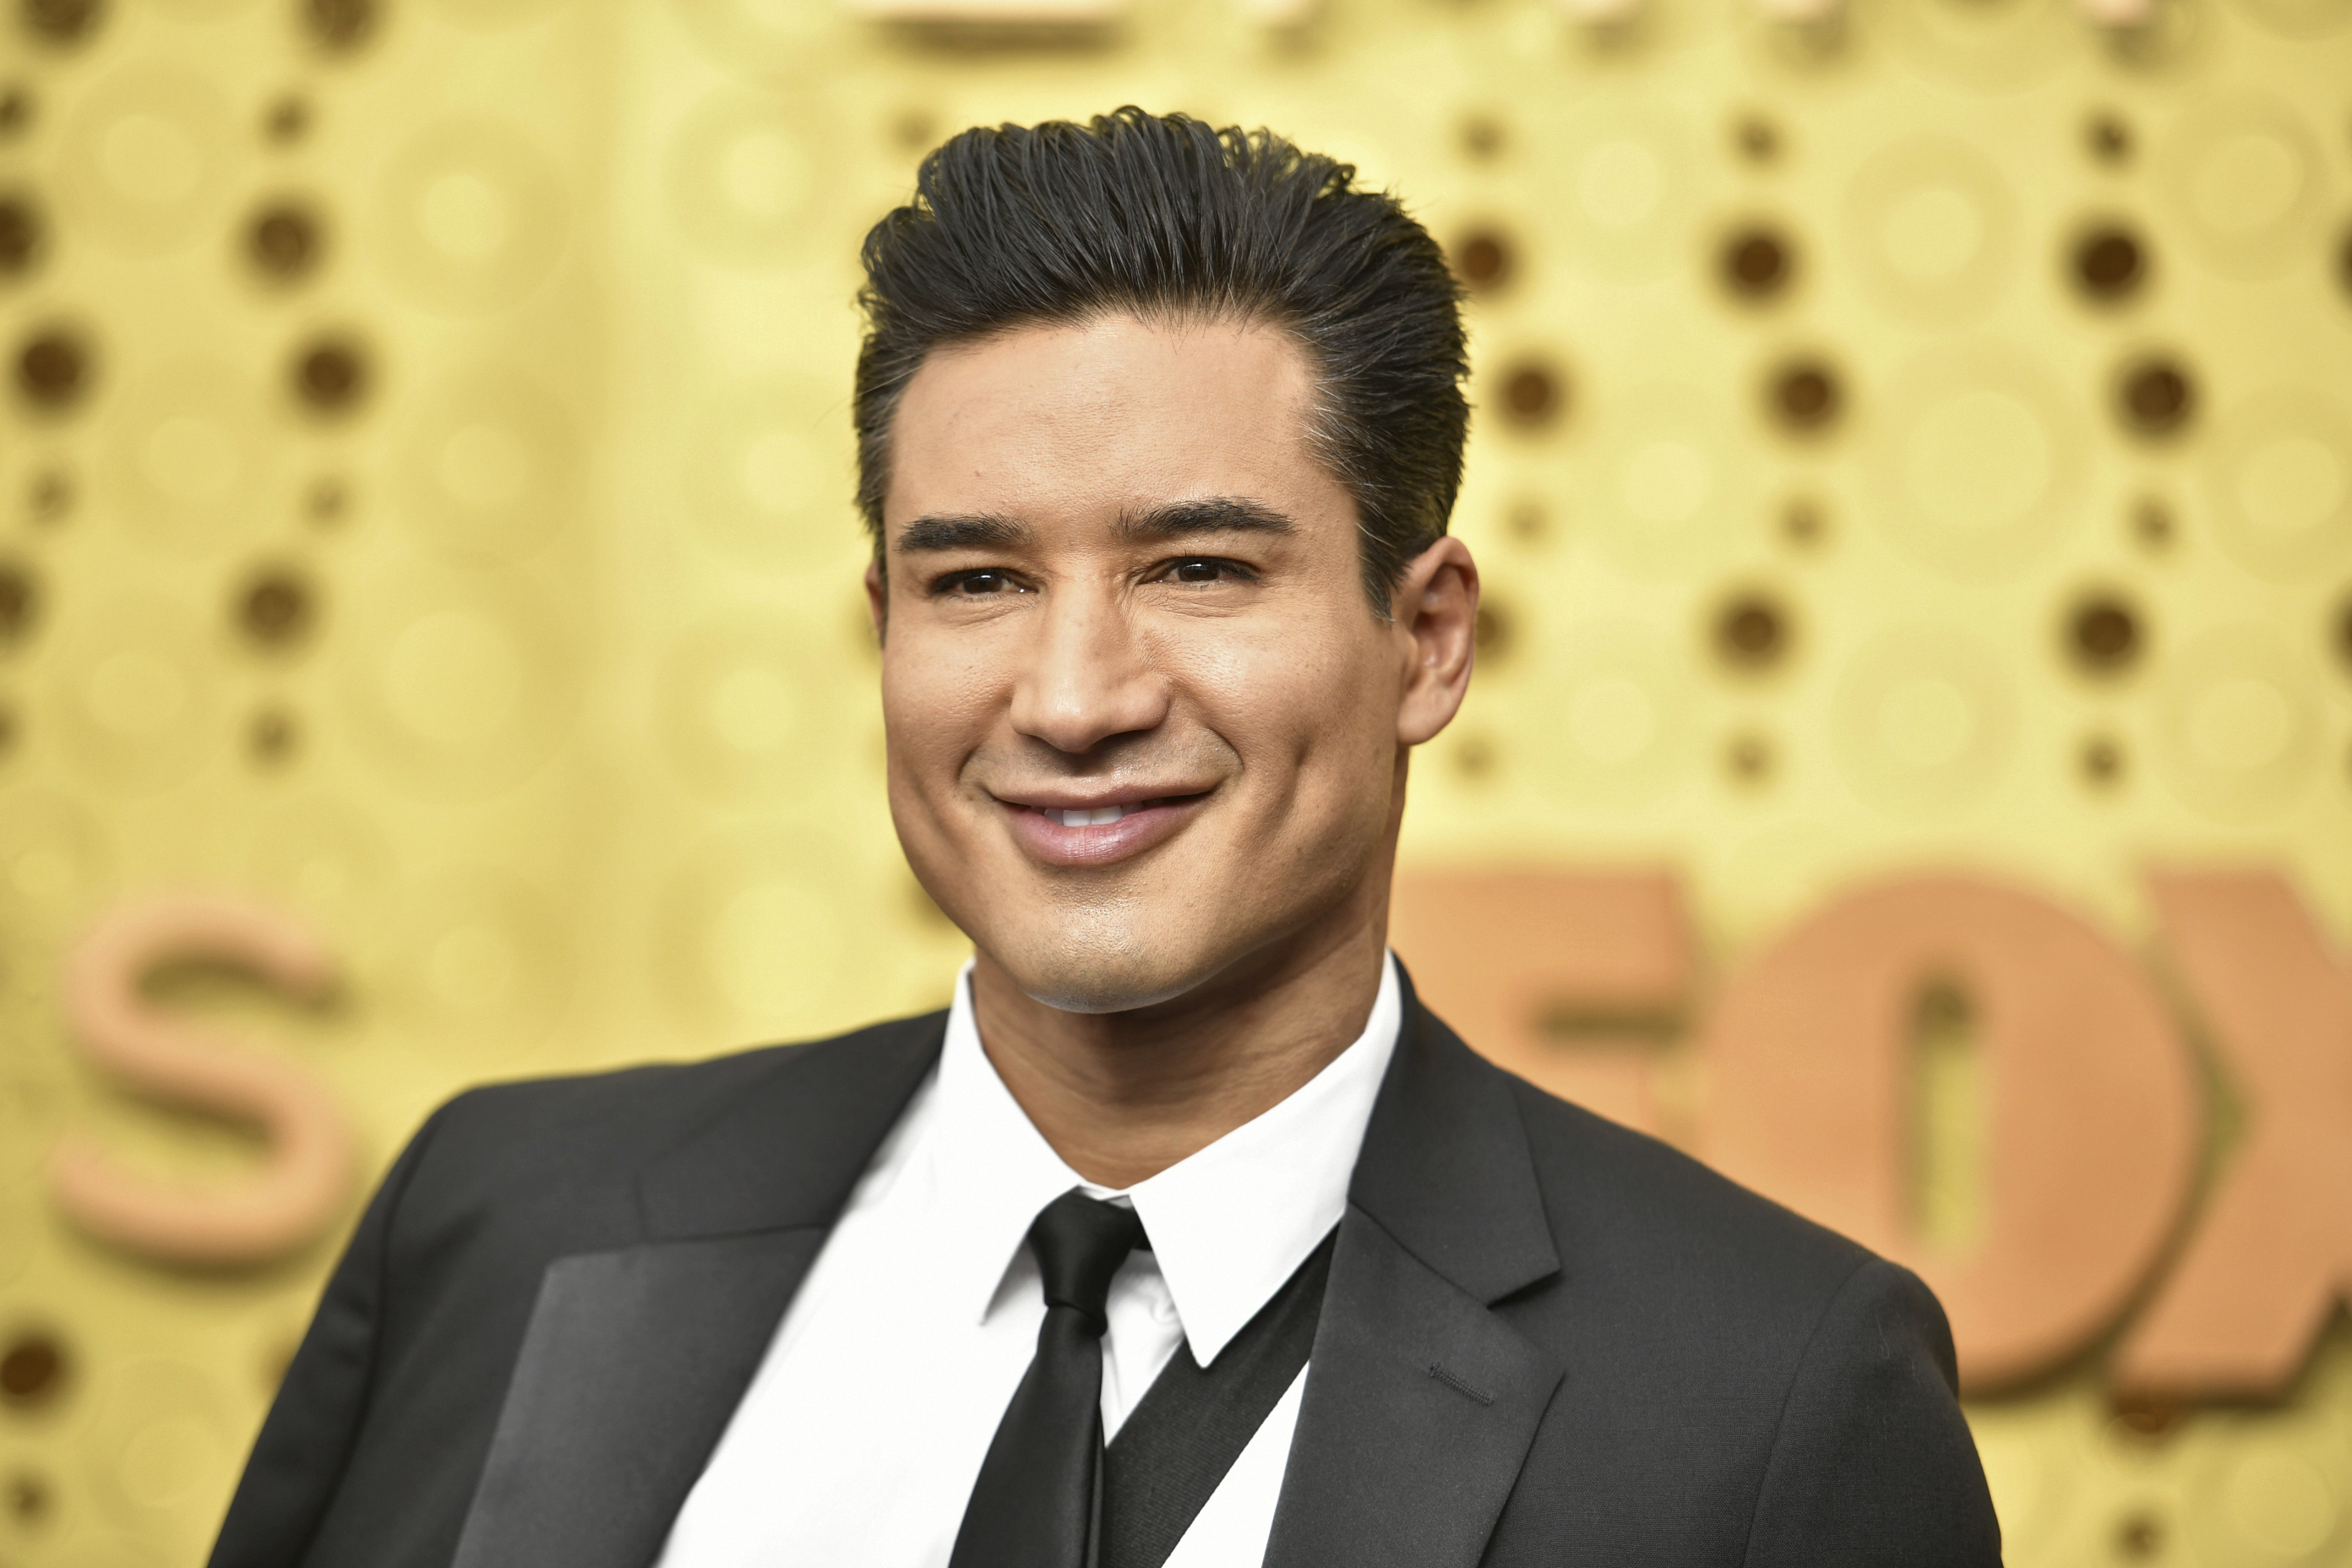 Emmys 2019: Mario Lopez steps out for award show days after undergoing surgery